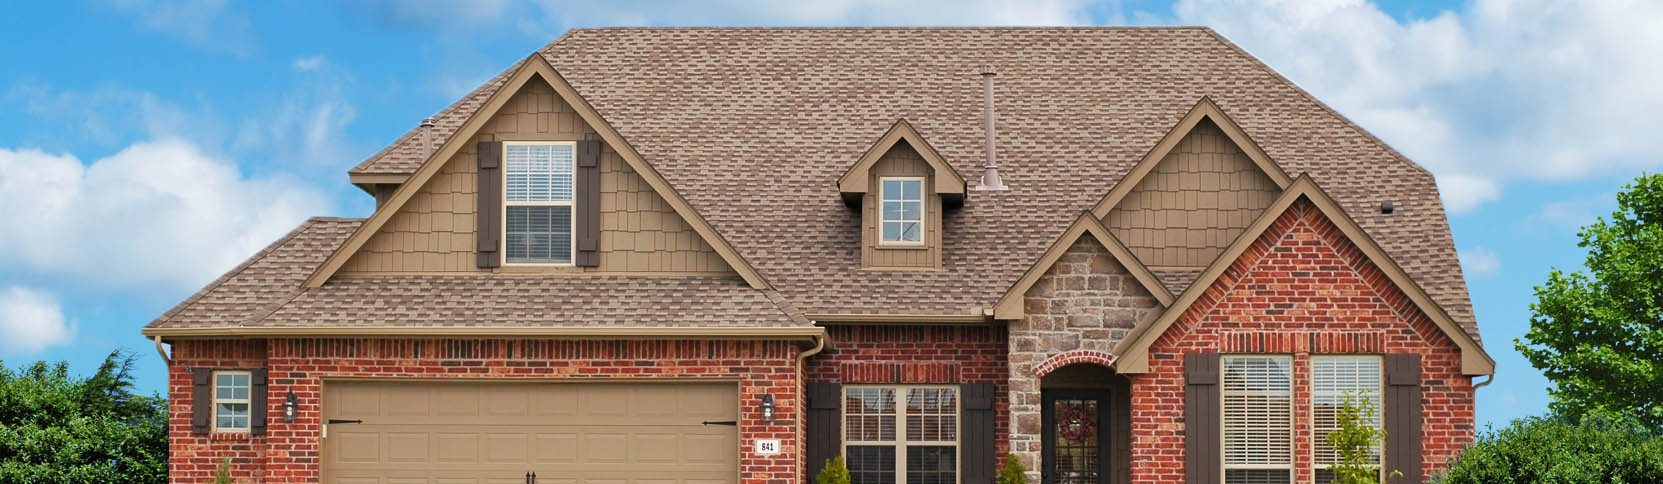 Lino Lakes Roofing